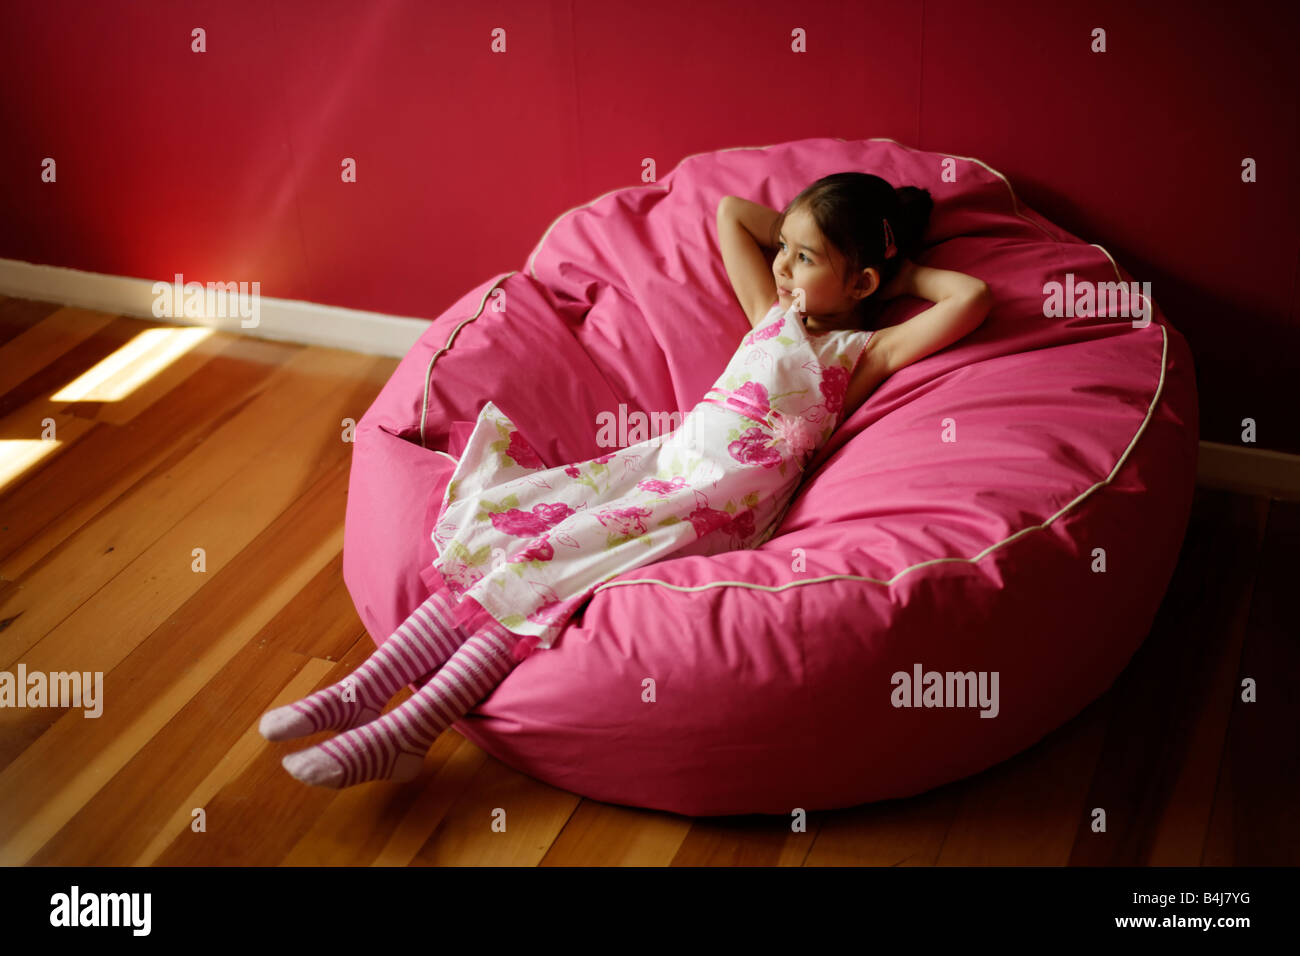 Girl 5 relaxes on pink bean bag Stock Photo